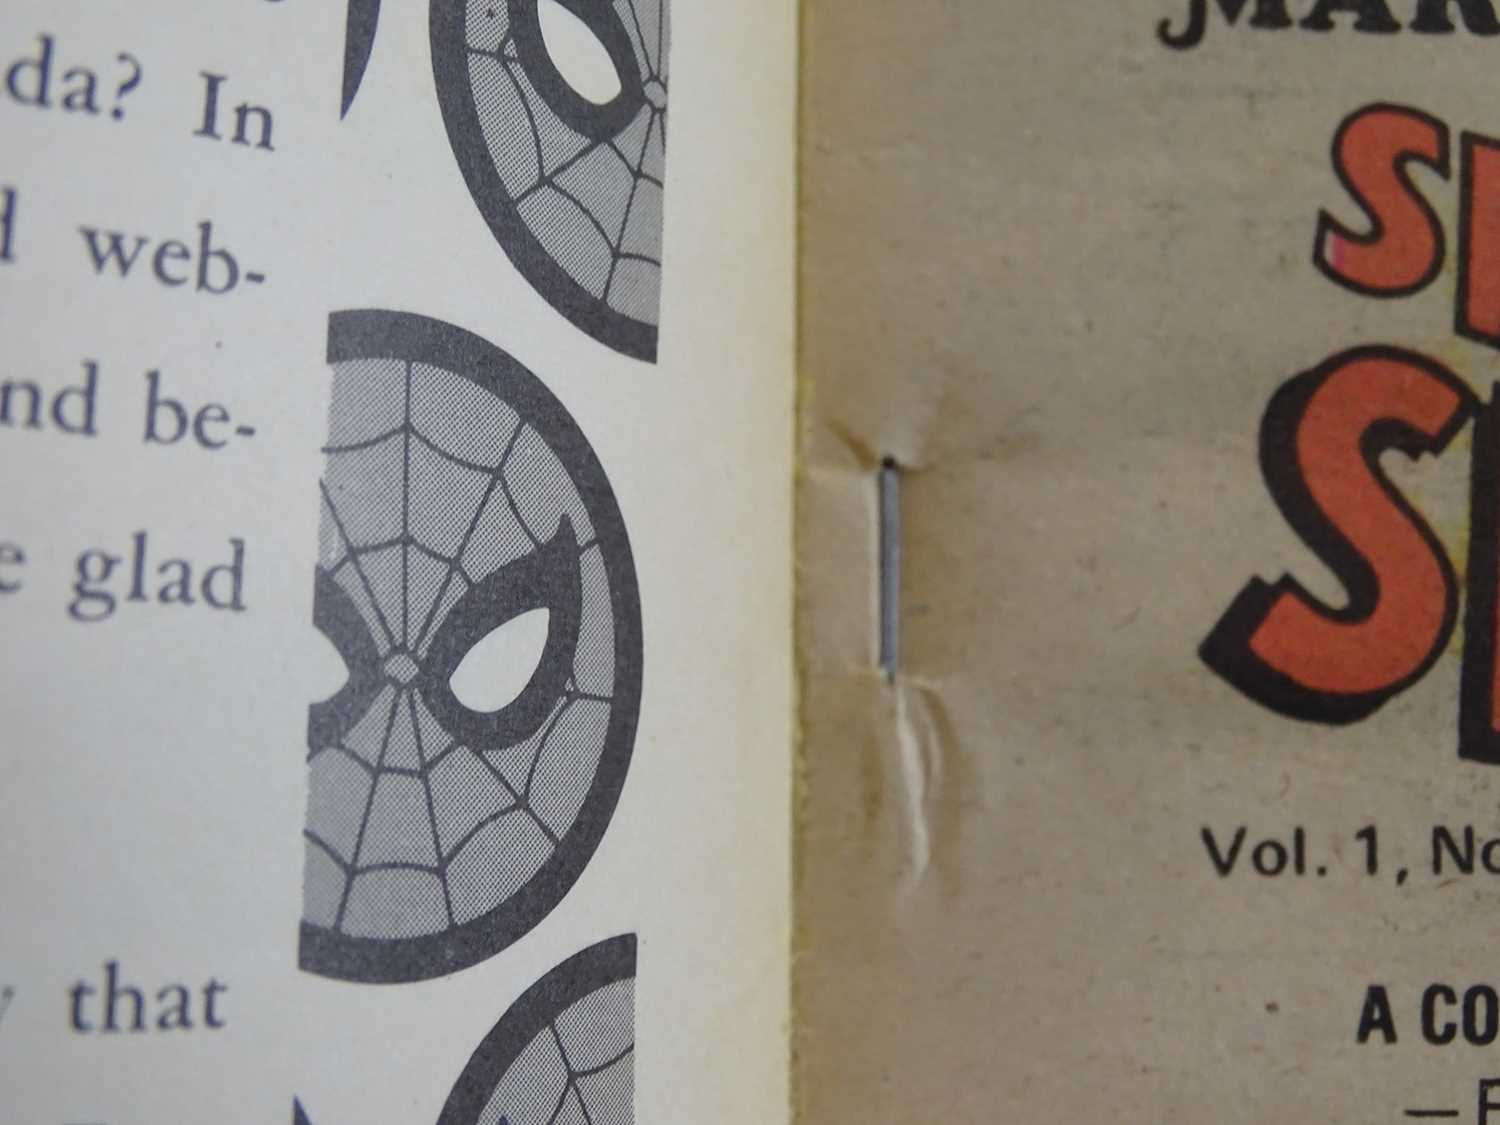 Marvel Treasury Edition #1 Spectacular Spider-Man (Marvel - 1974) Includes Gil Kane and Steve - Image 4 of 8